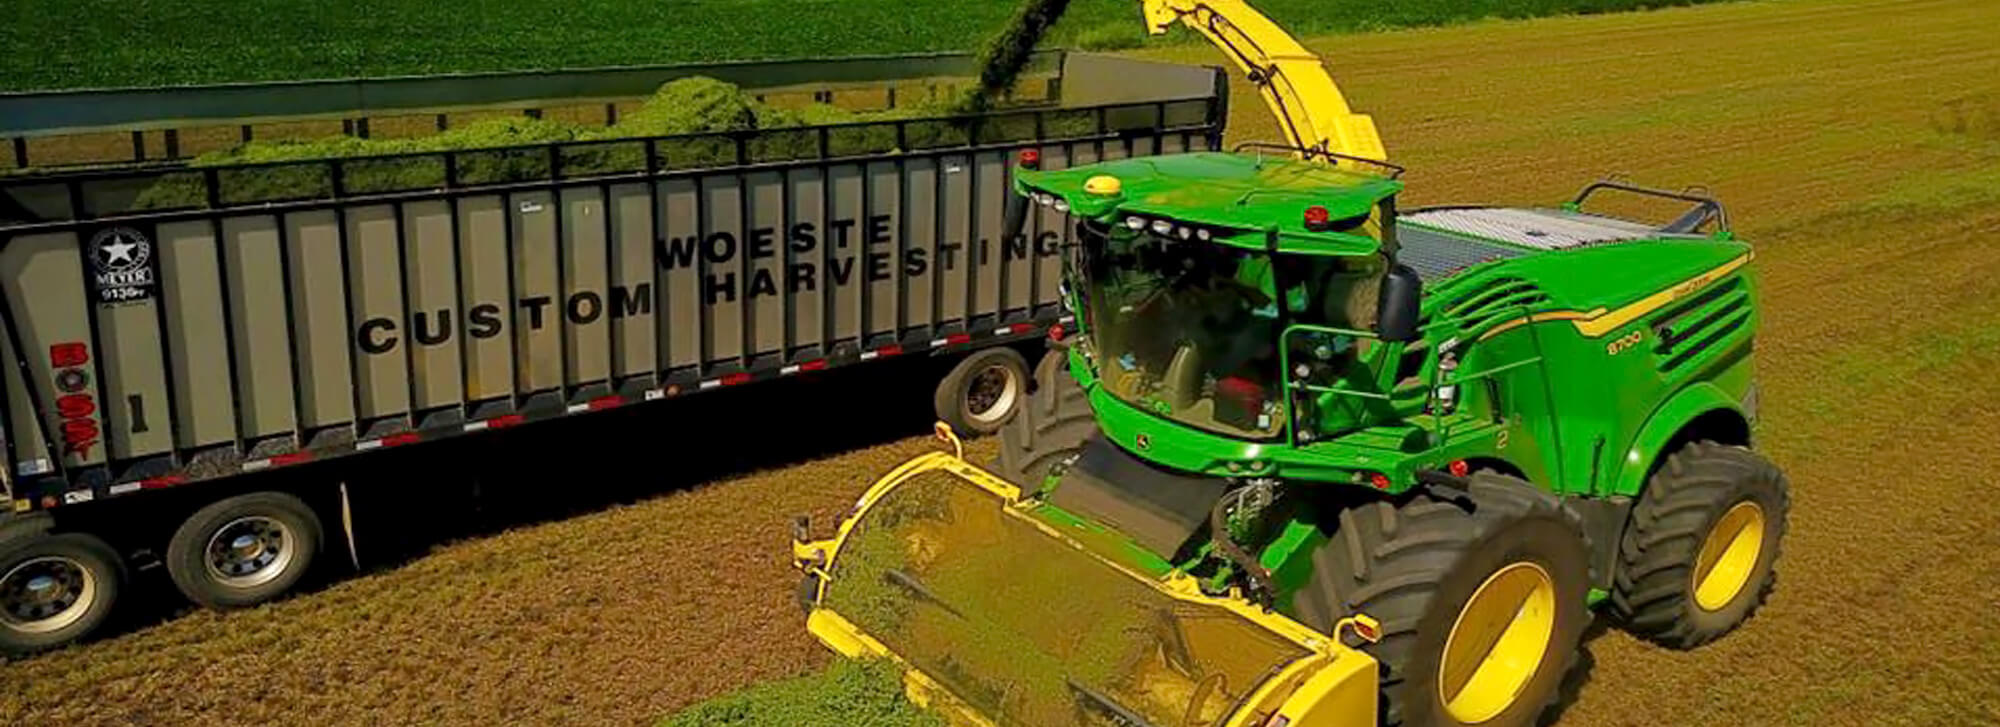 John Deere Forage Harvester chopping hay